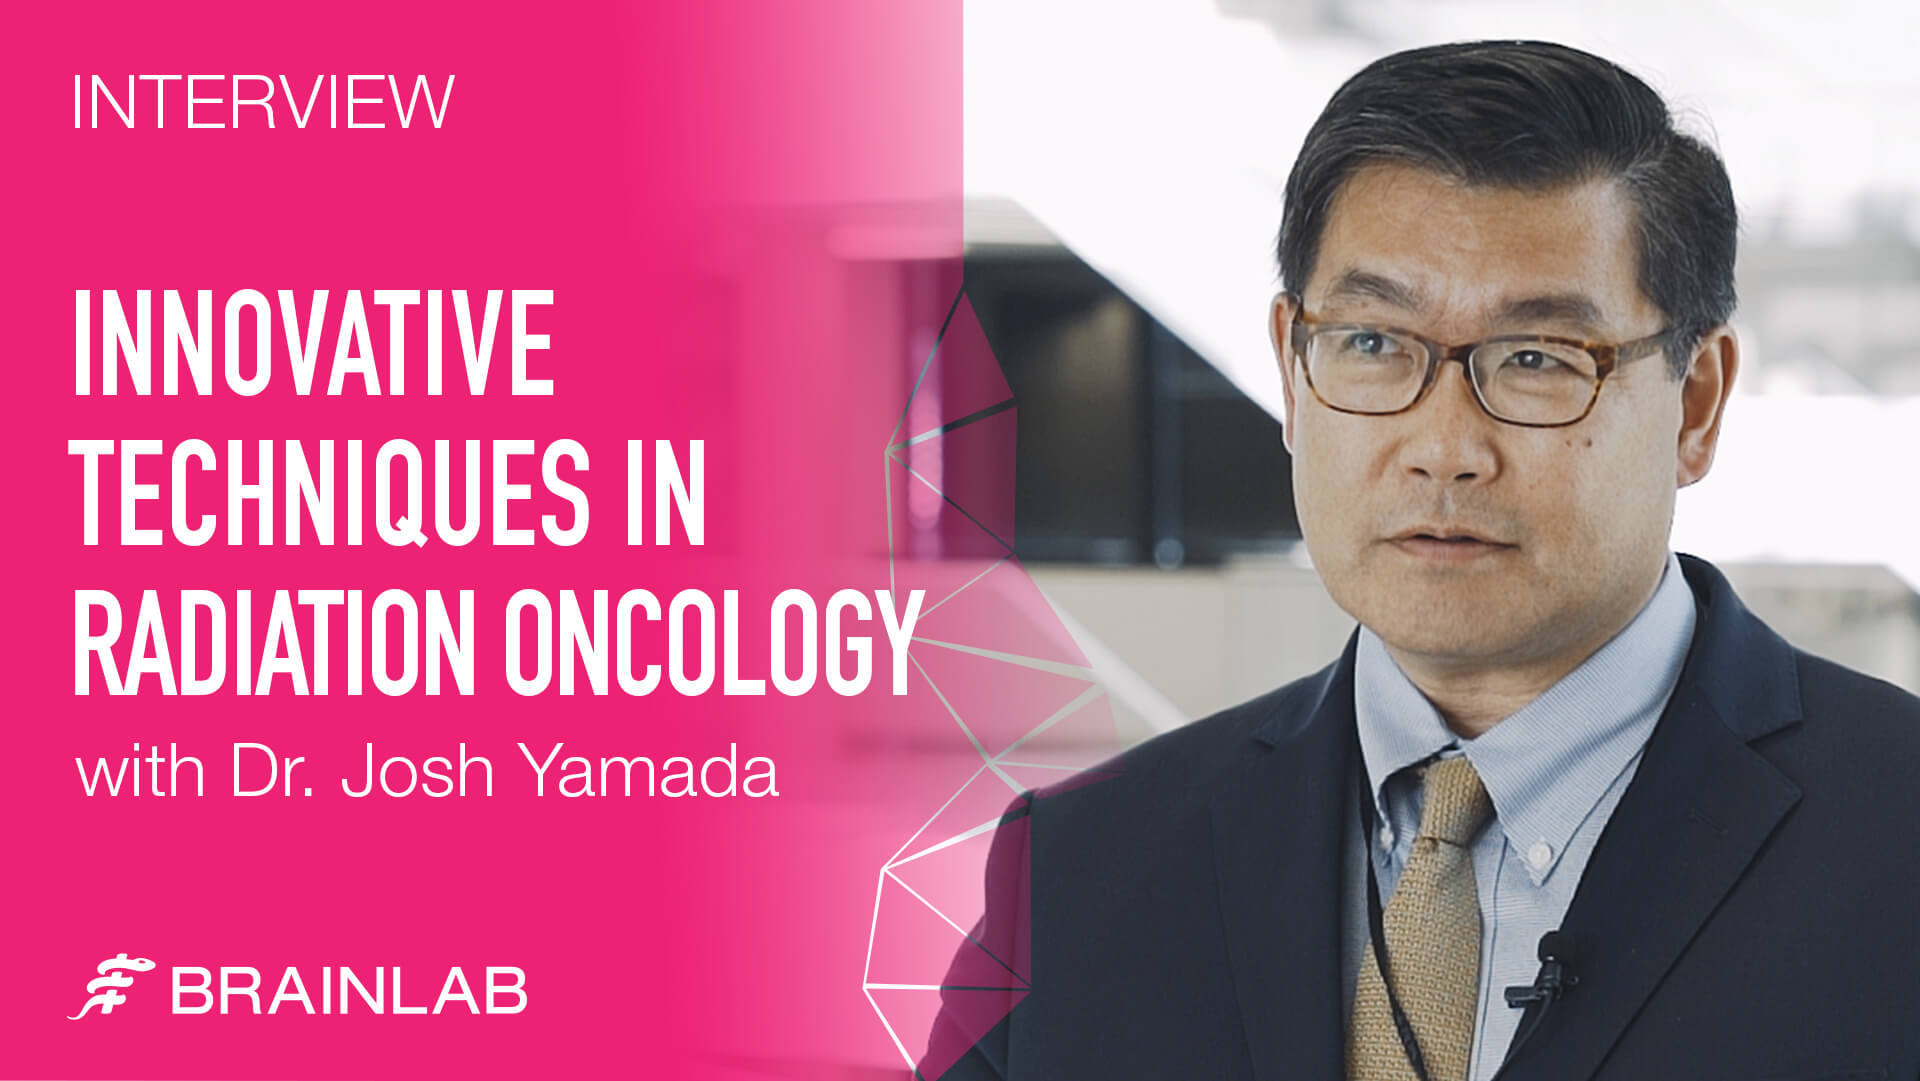 Innovative Techniques in Radiation Oncology with Dr. Josh Yamada